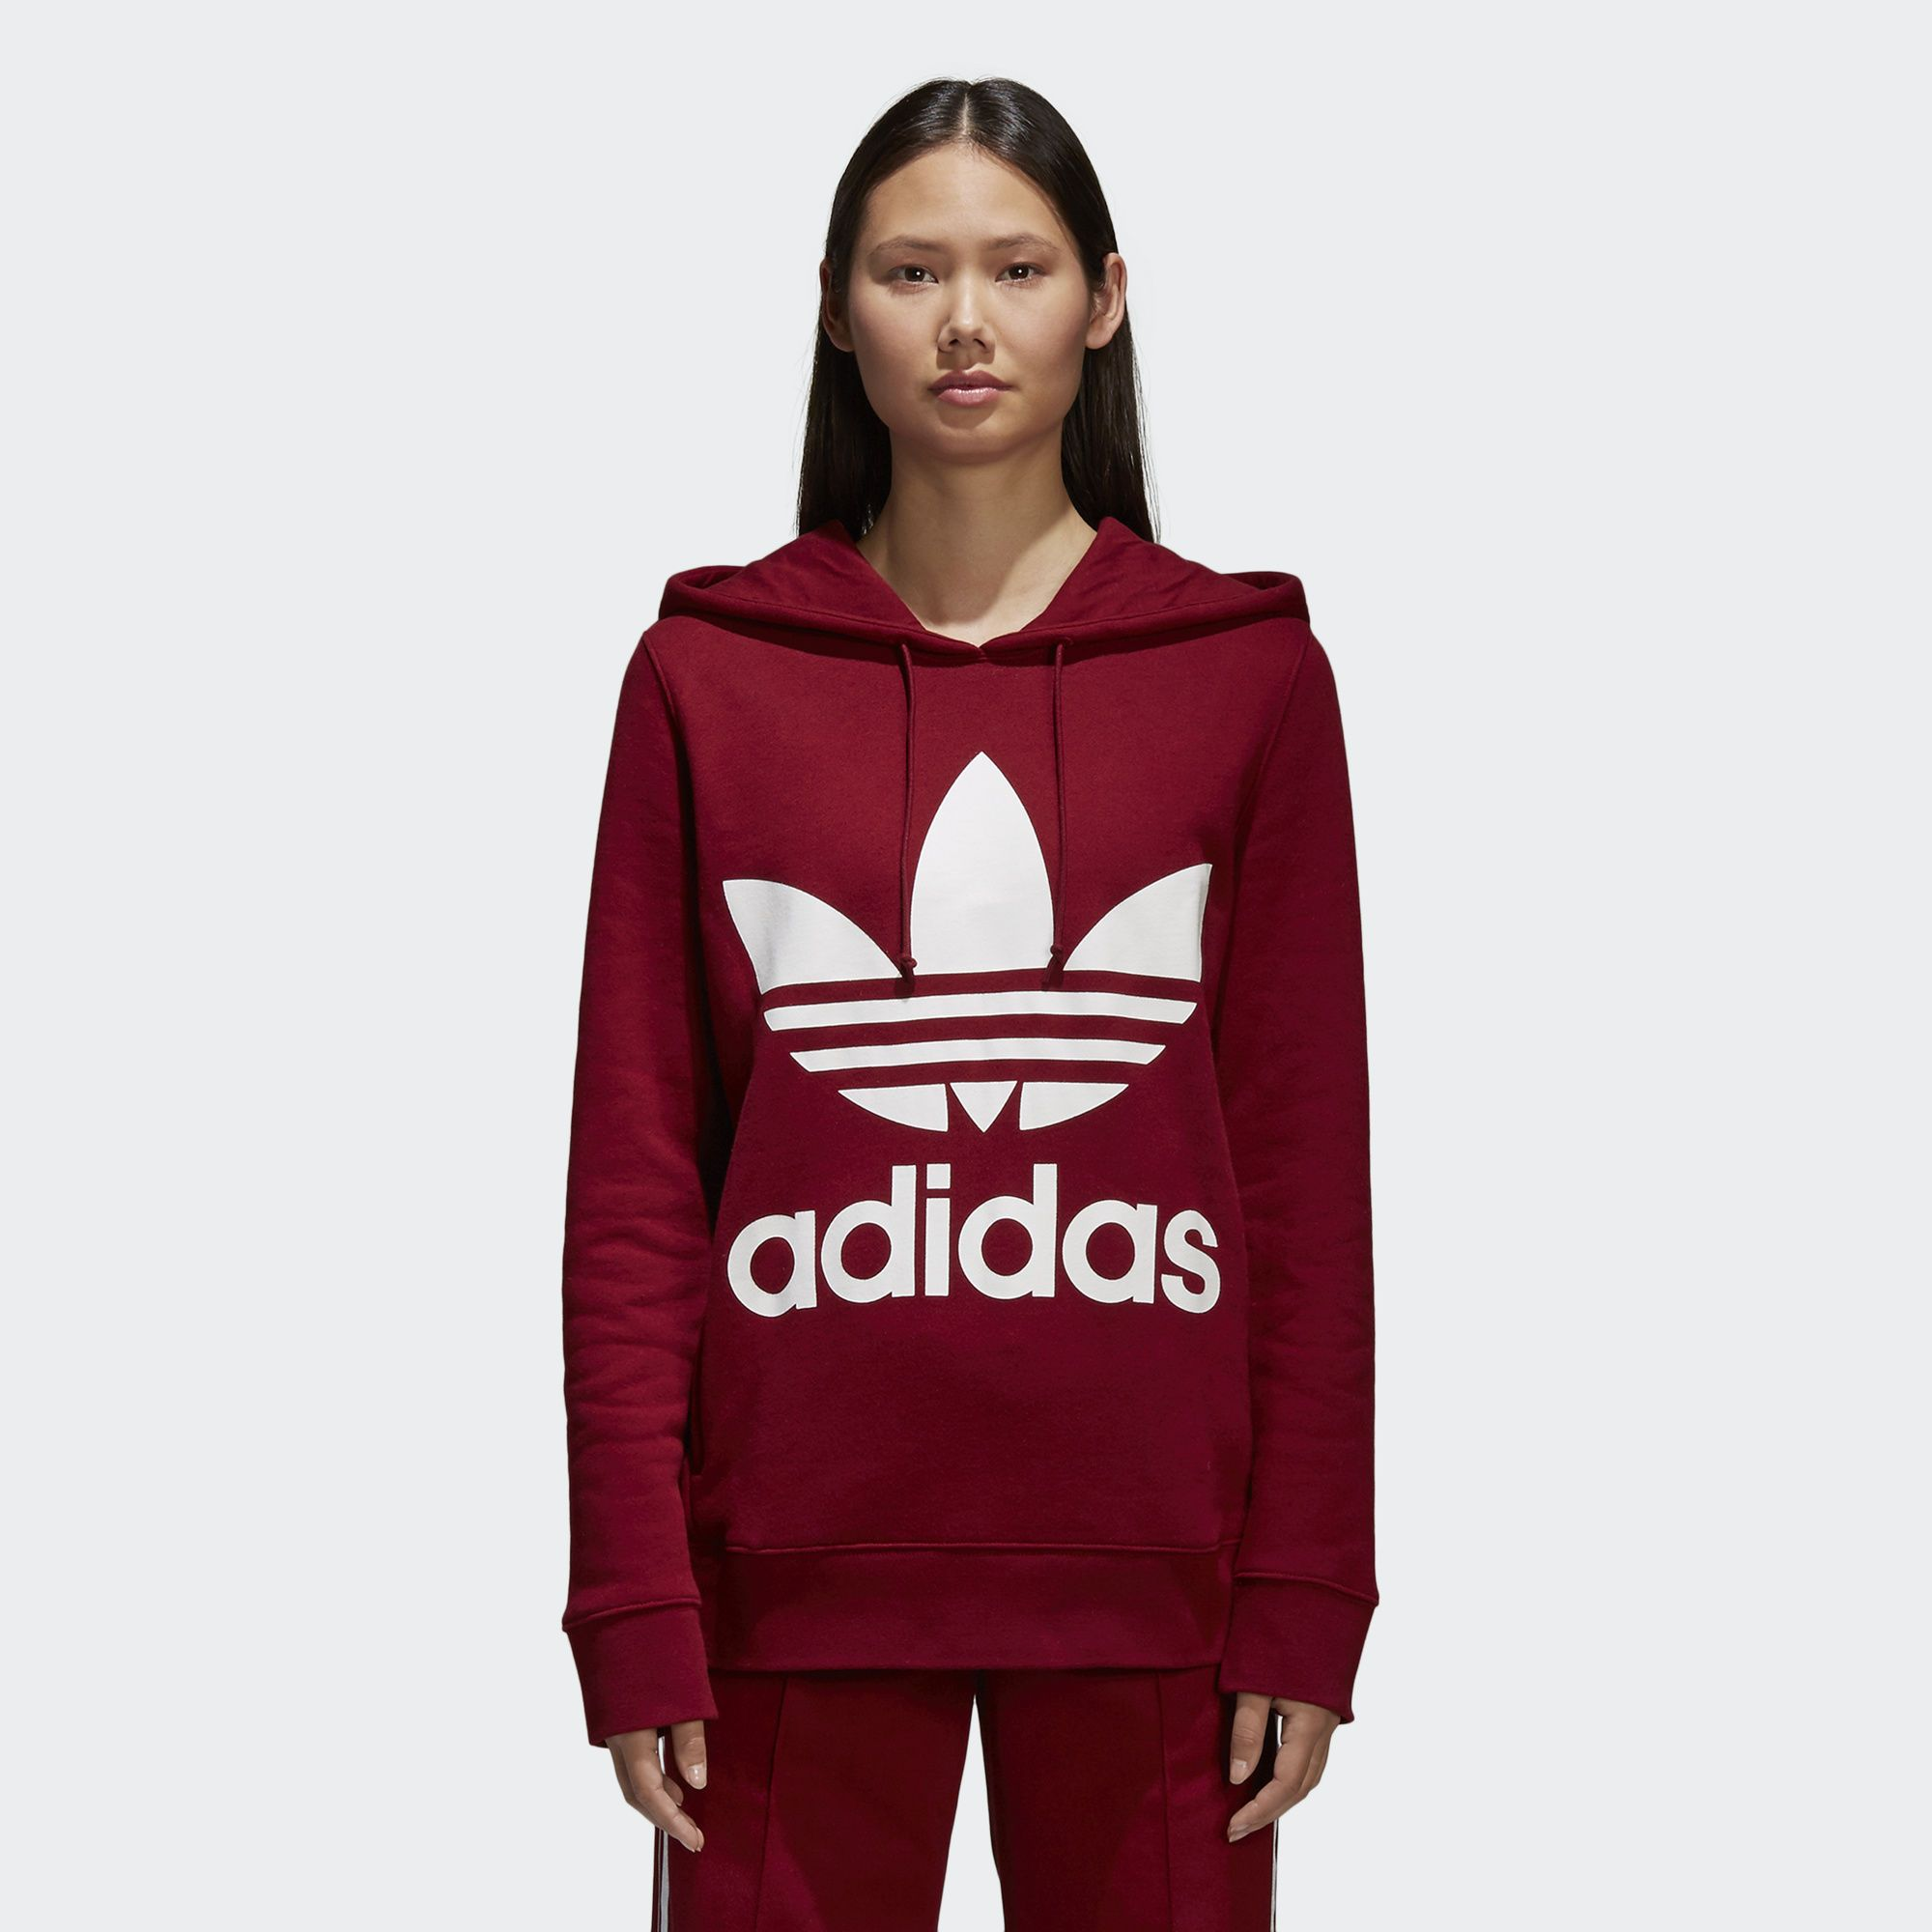 A Sporty Essential Infused With A Modern Spirit This Women S Sweatshirt Showcases Authentic Adi Women Hoodies Sweatshirts Hoodies Womens Adidas Trefoil Hoodie [ 2000 x 2000 Pixel ]